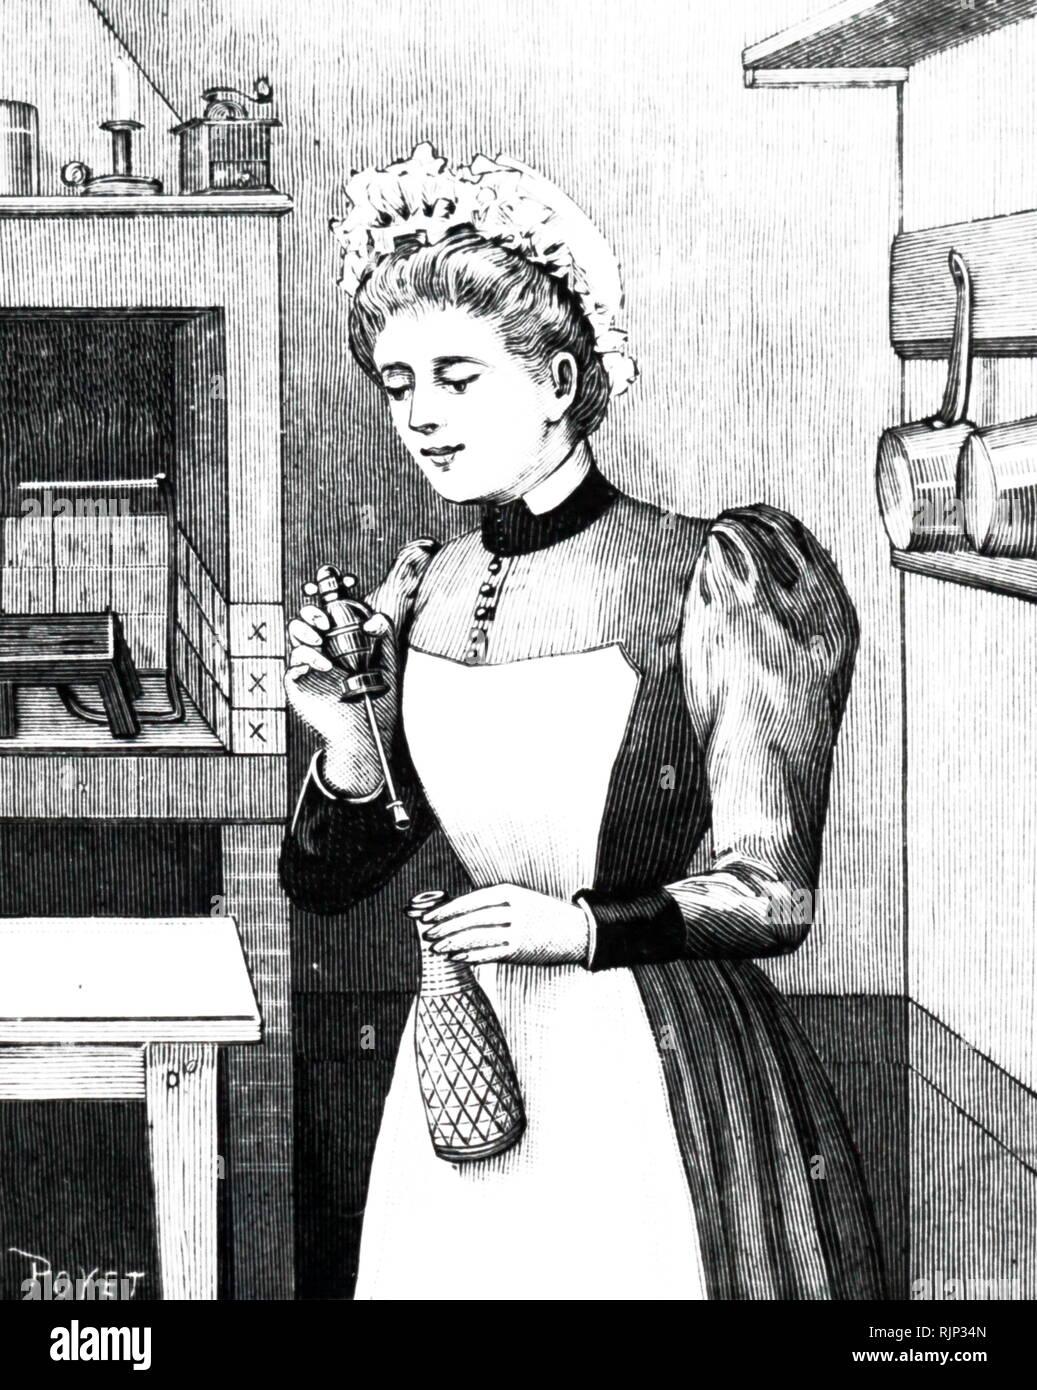 An engraving depicting a maid filling a rechargeable 'Sparklet' soda syphon. The gas cartridge was placed in the bulb she is holding in her right hand. Dated 19th century - Stock Image